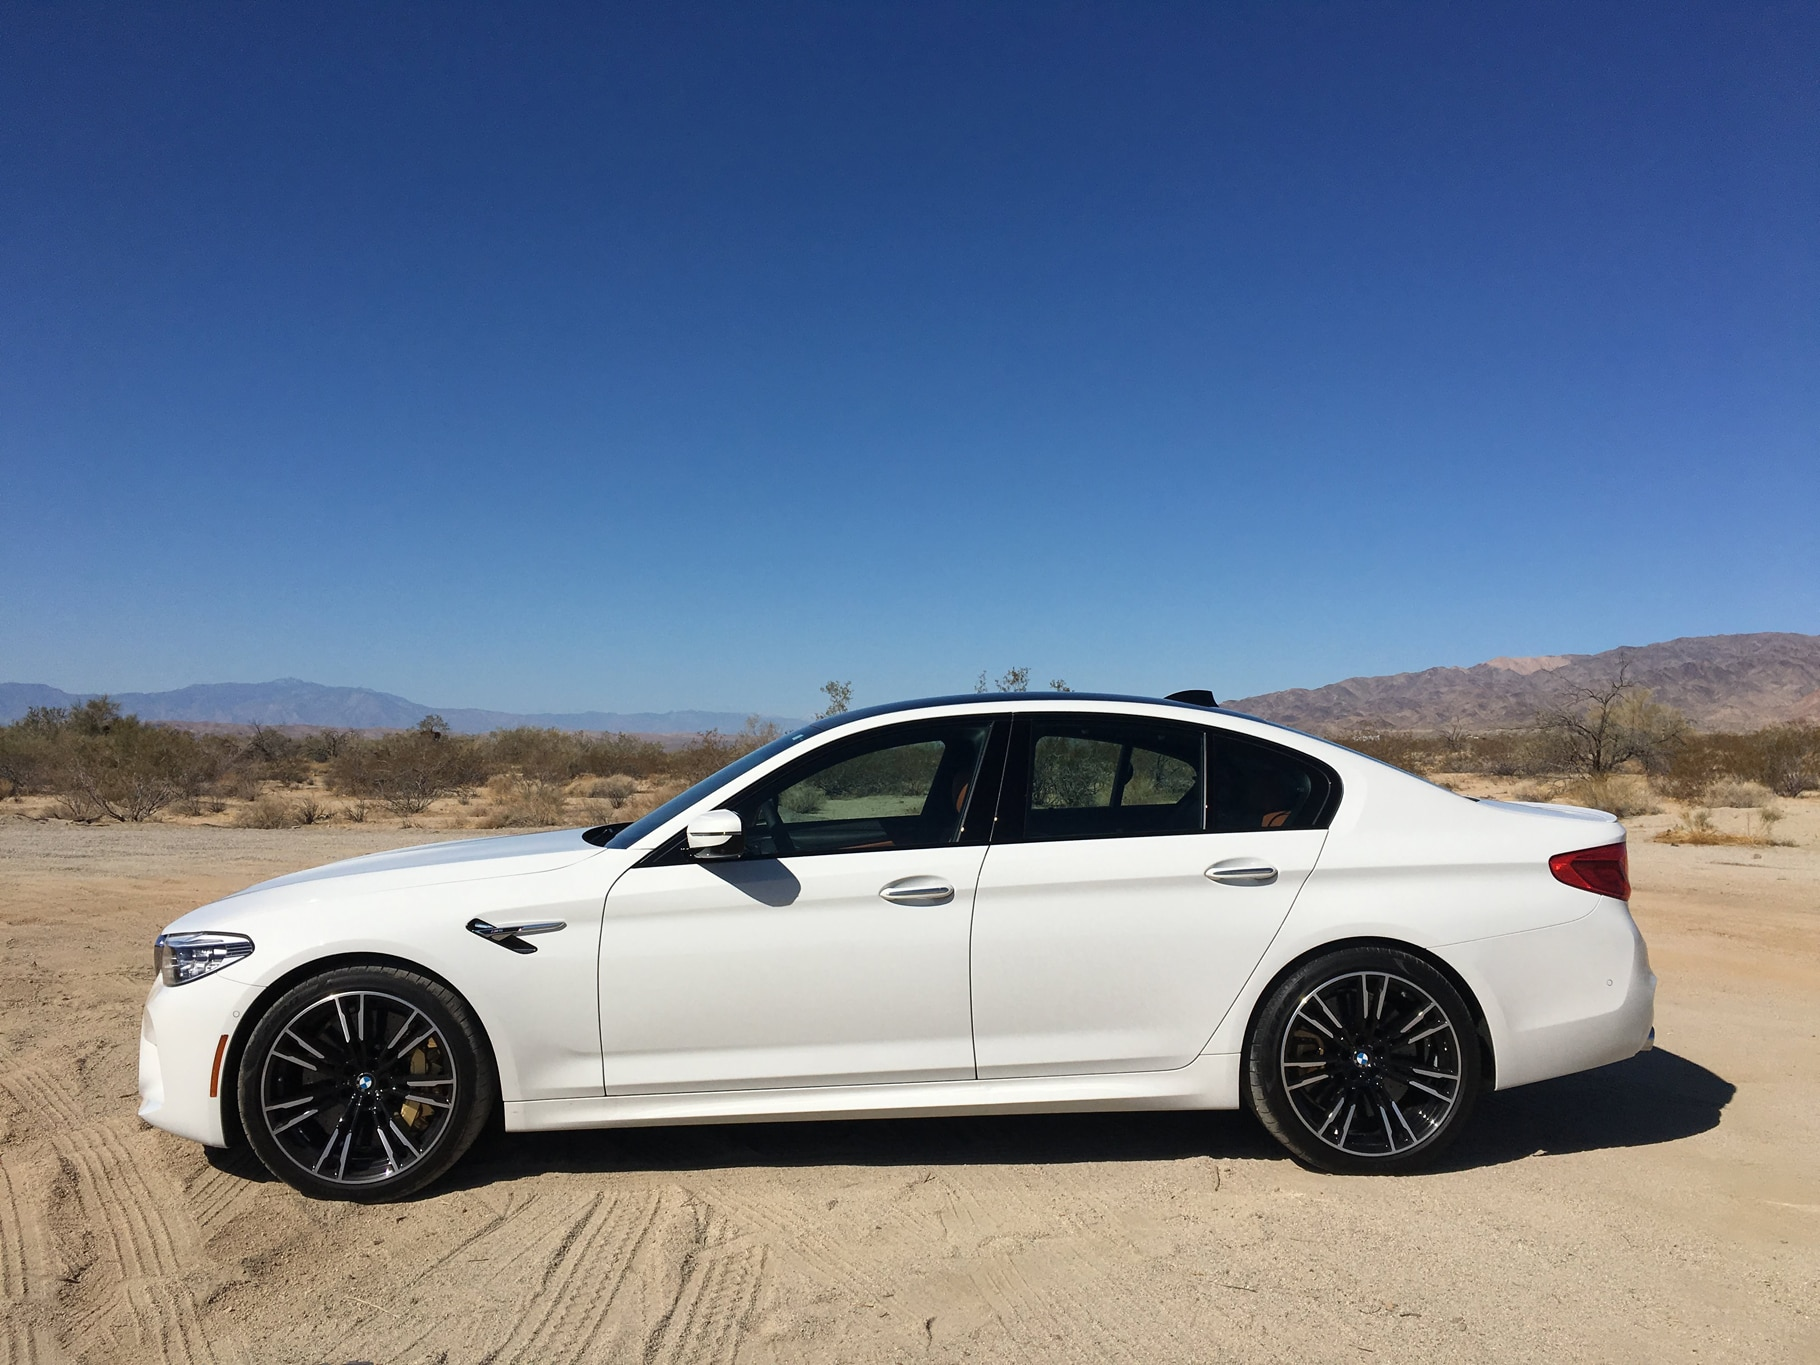 Ultimate Motoring At The 2018 BMW Group Test Fest